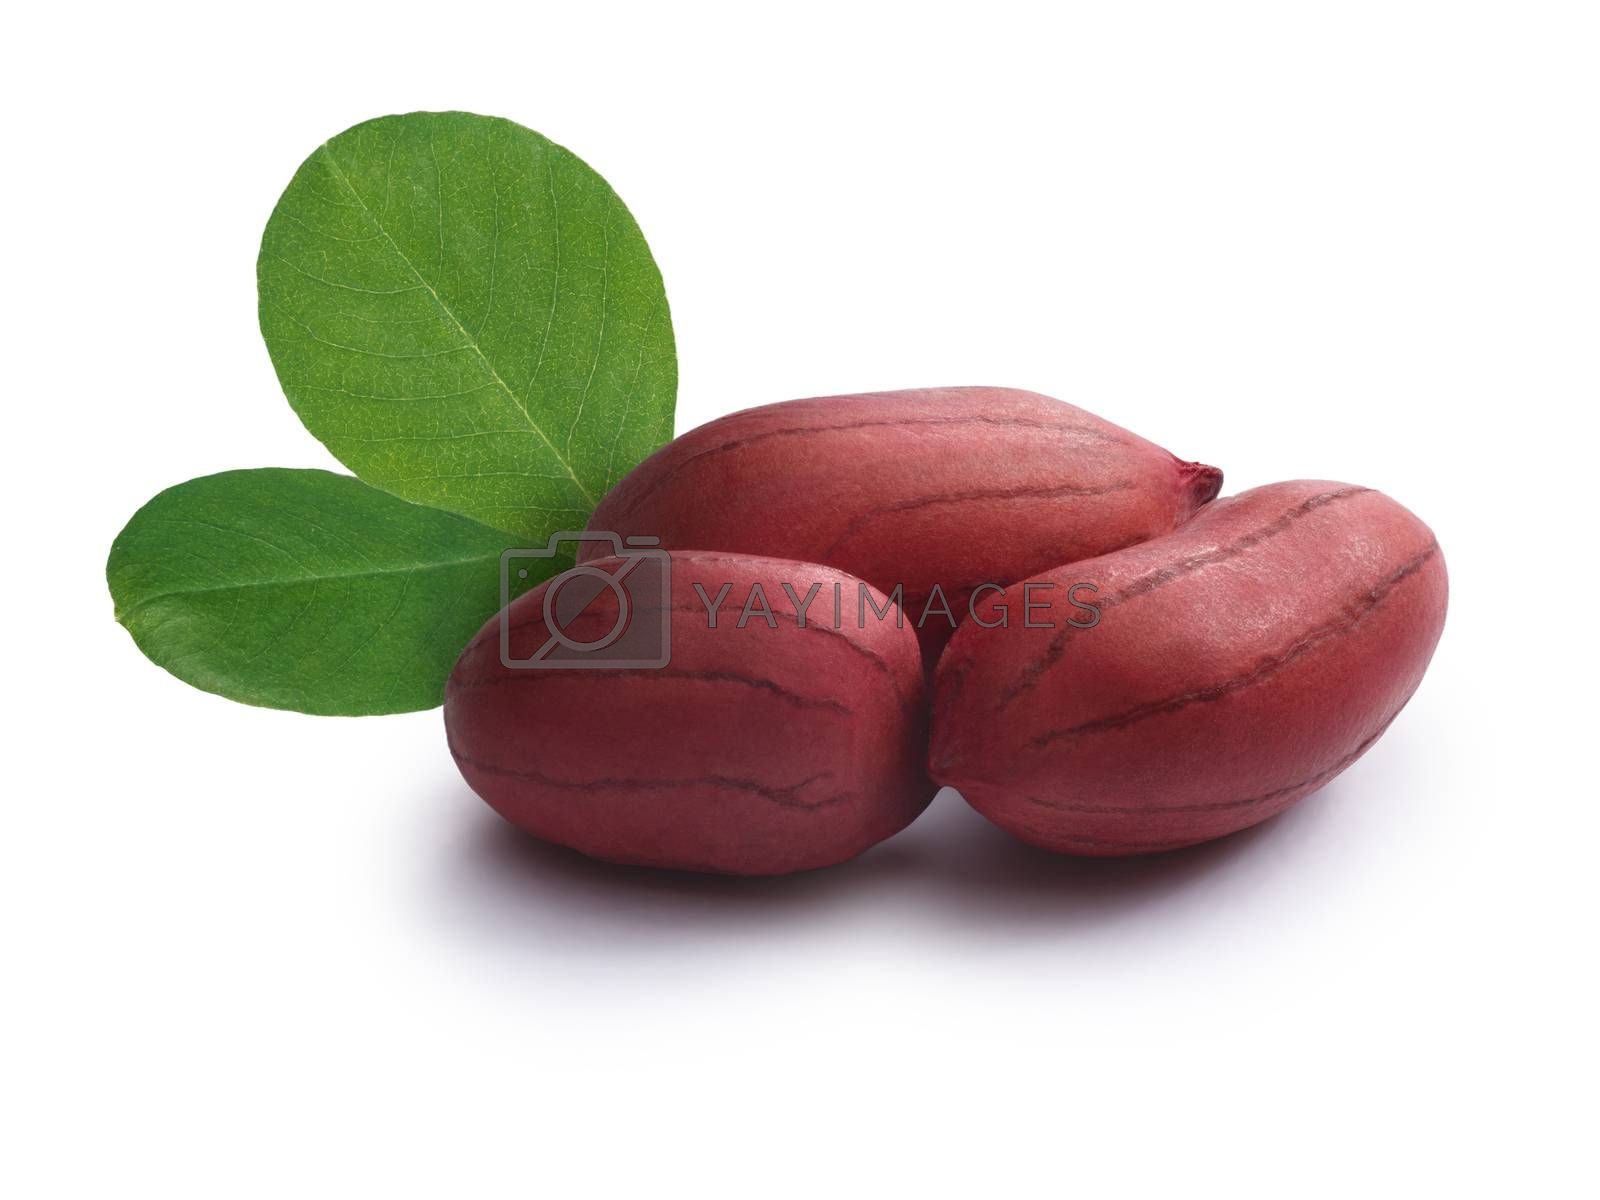 Whole, shelled raw peanuts with leaves. Clipping paths included, infinite depth of field